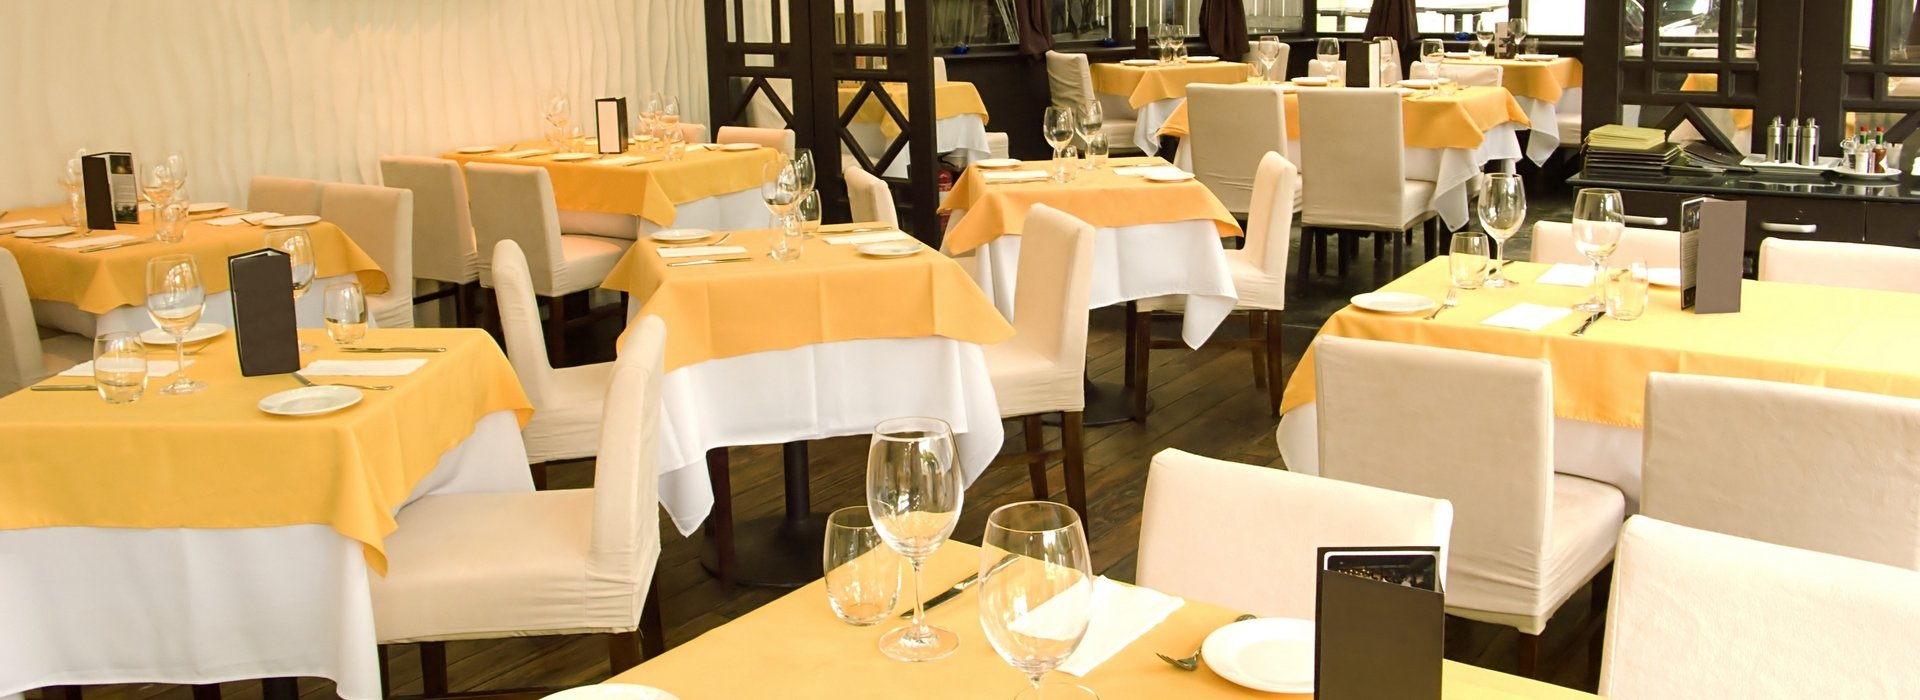 Restaurants in Pest